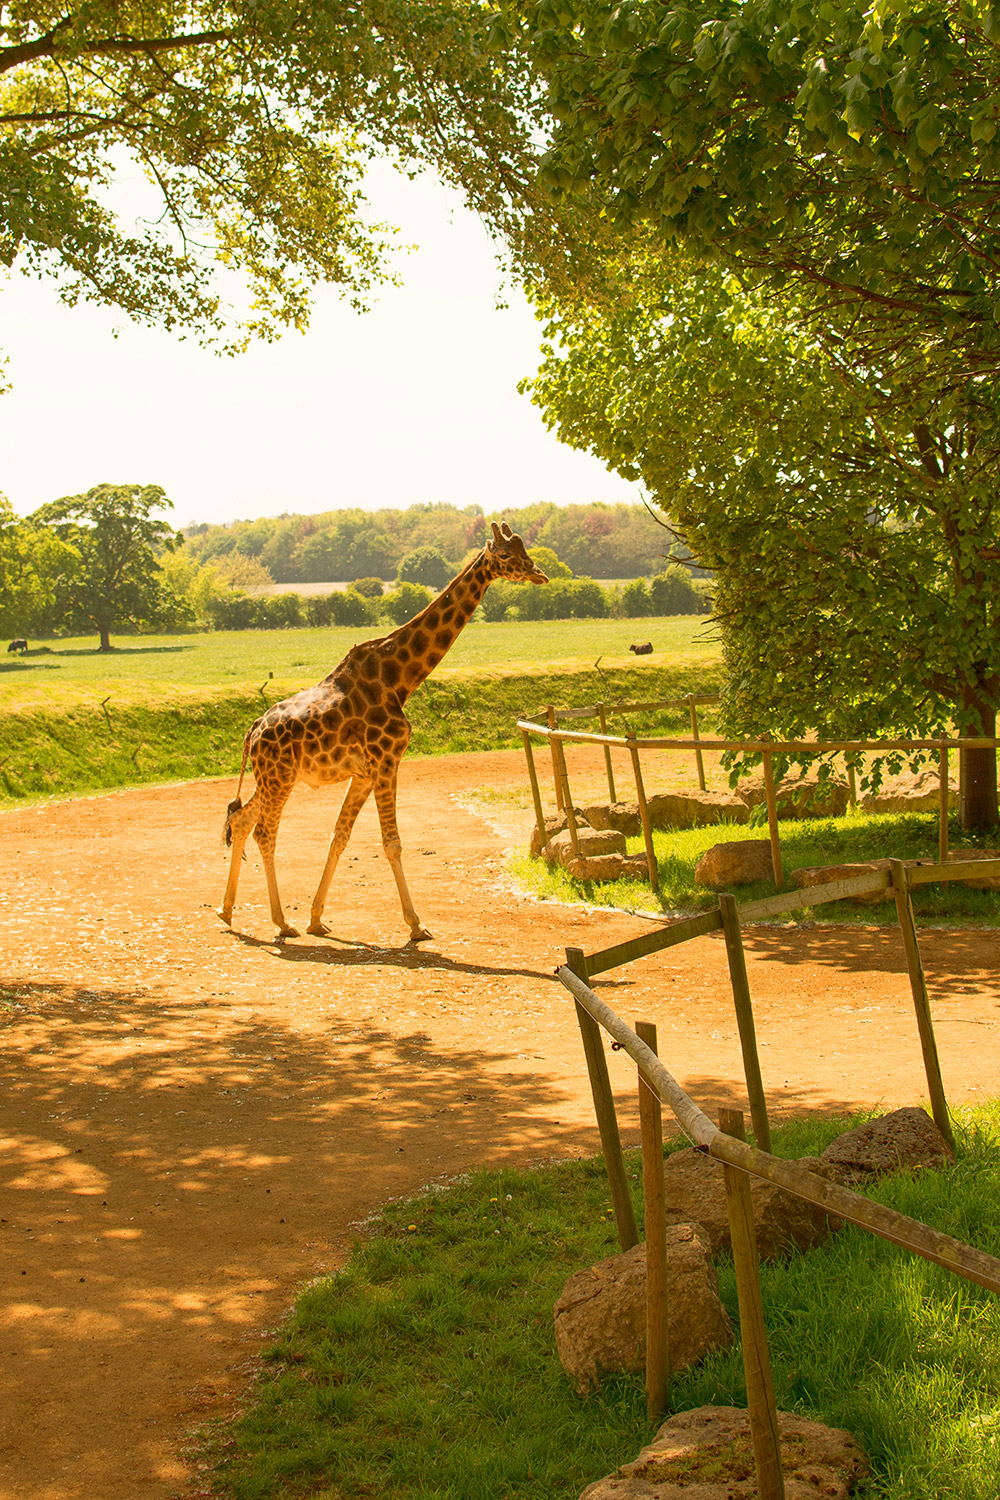 Seeing the giraffes at Cotswold Wildlife Park